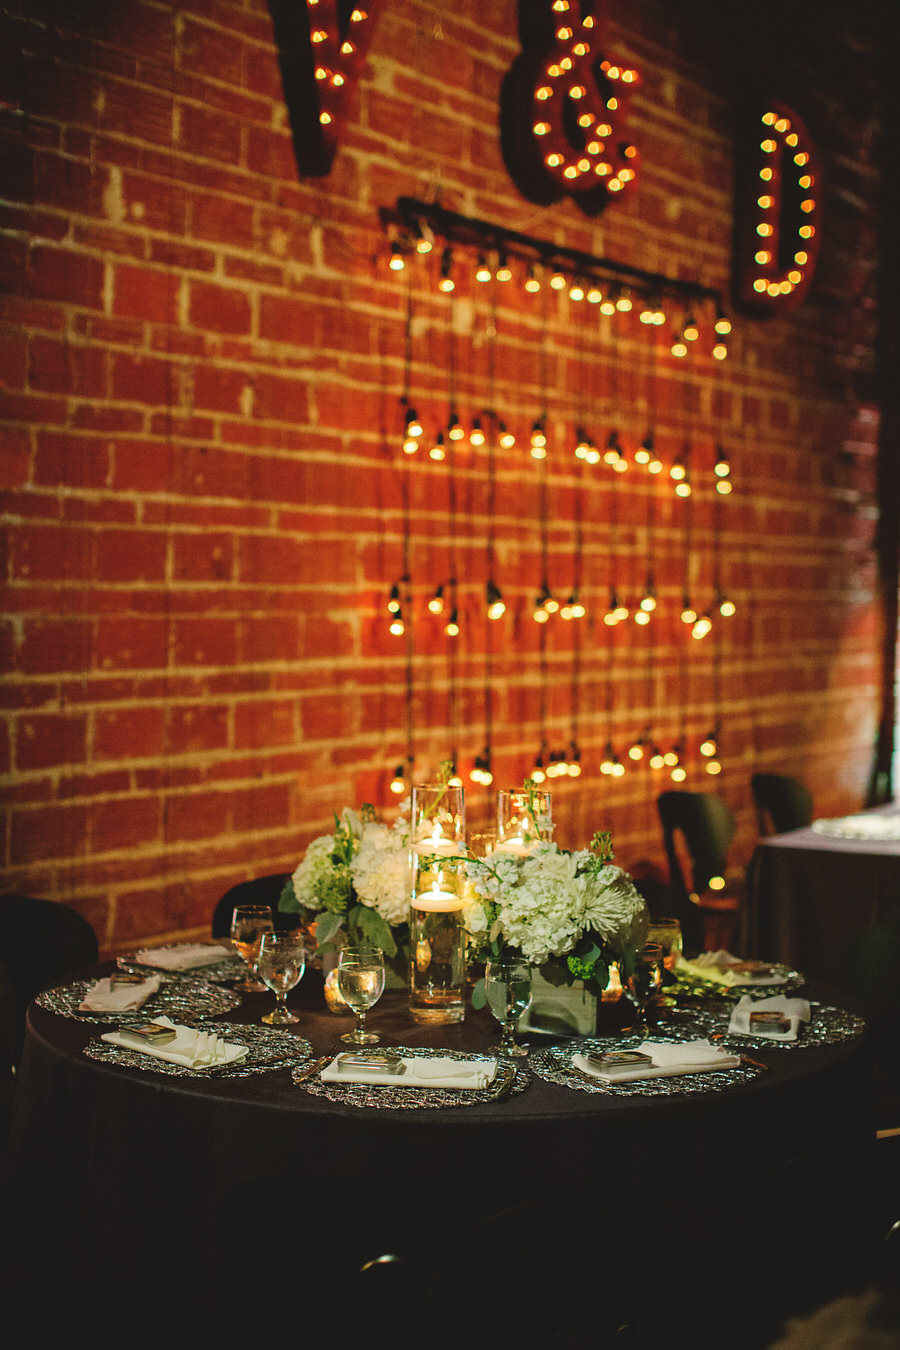 Silver and Ivory Wedding Reception Decor Centerpieces with Floating Candles, Silver Chargers and Exposed Brick Walls with Hanging String Lights | St. Petersburg Wedding Venue NOVA 535 | Signature Event Rentals | Wedding Planner Special Moments Event Planning | Iza's Flowers